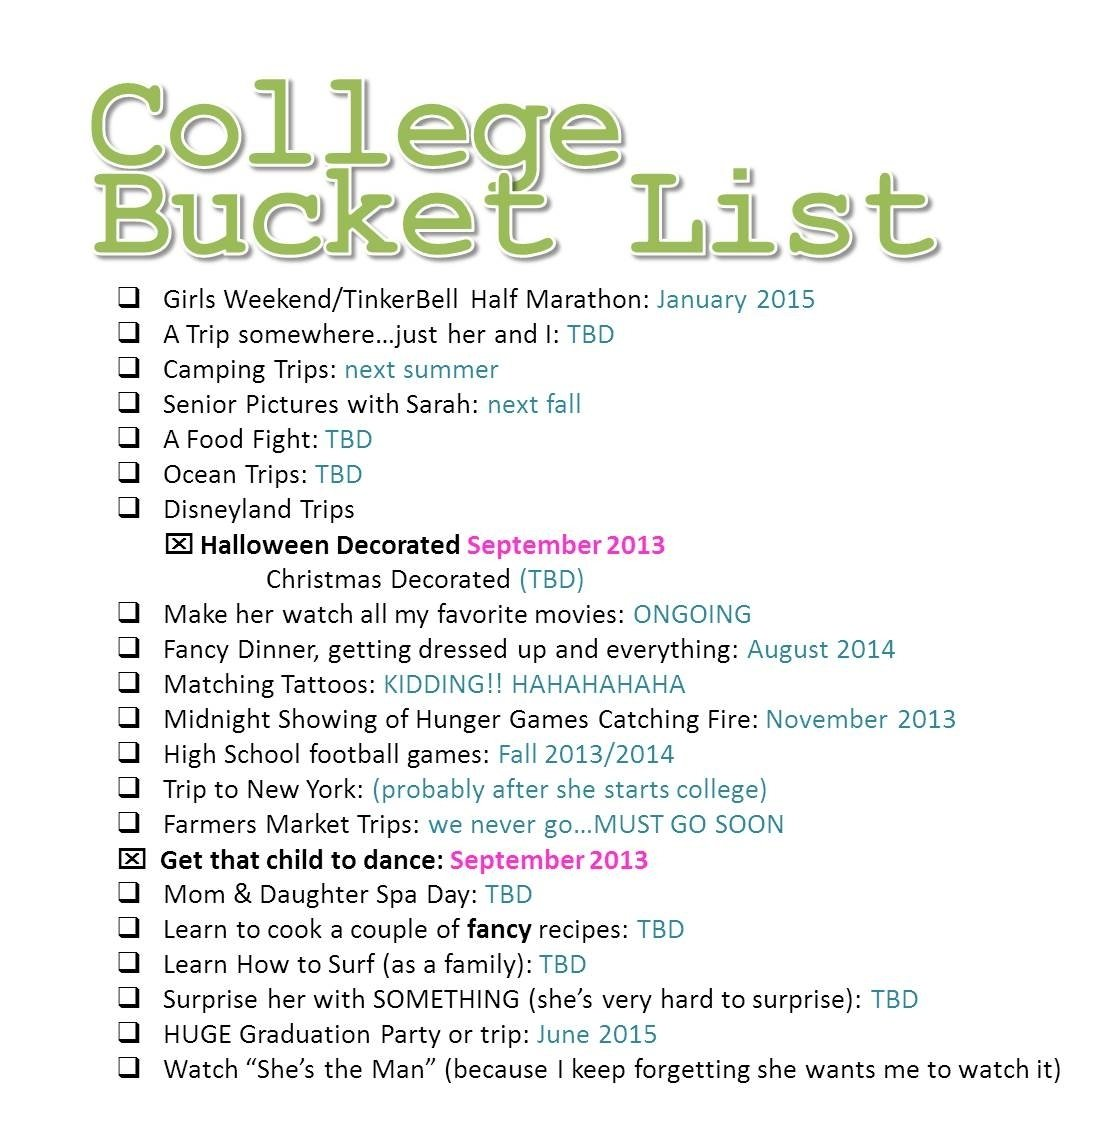 10 Fashionable Good Ideas For A Bucket List bingo the college bucket list like the idea would use different 2 2021